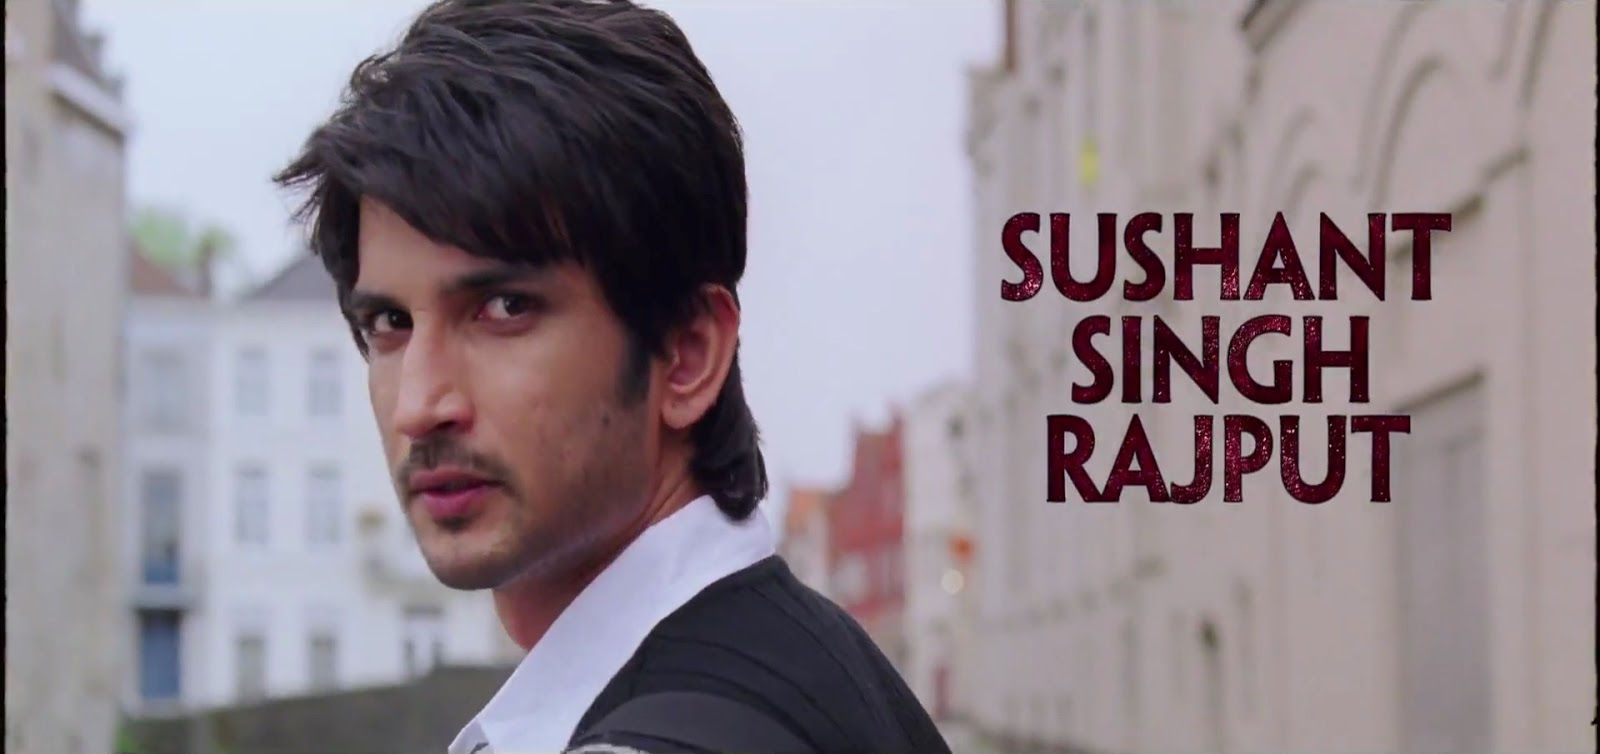 sushant singh rajput best acter of bollywood hd images wallpapers